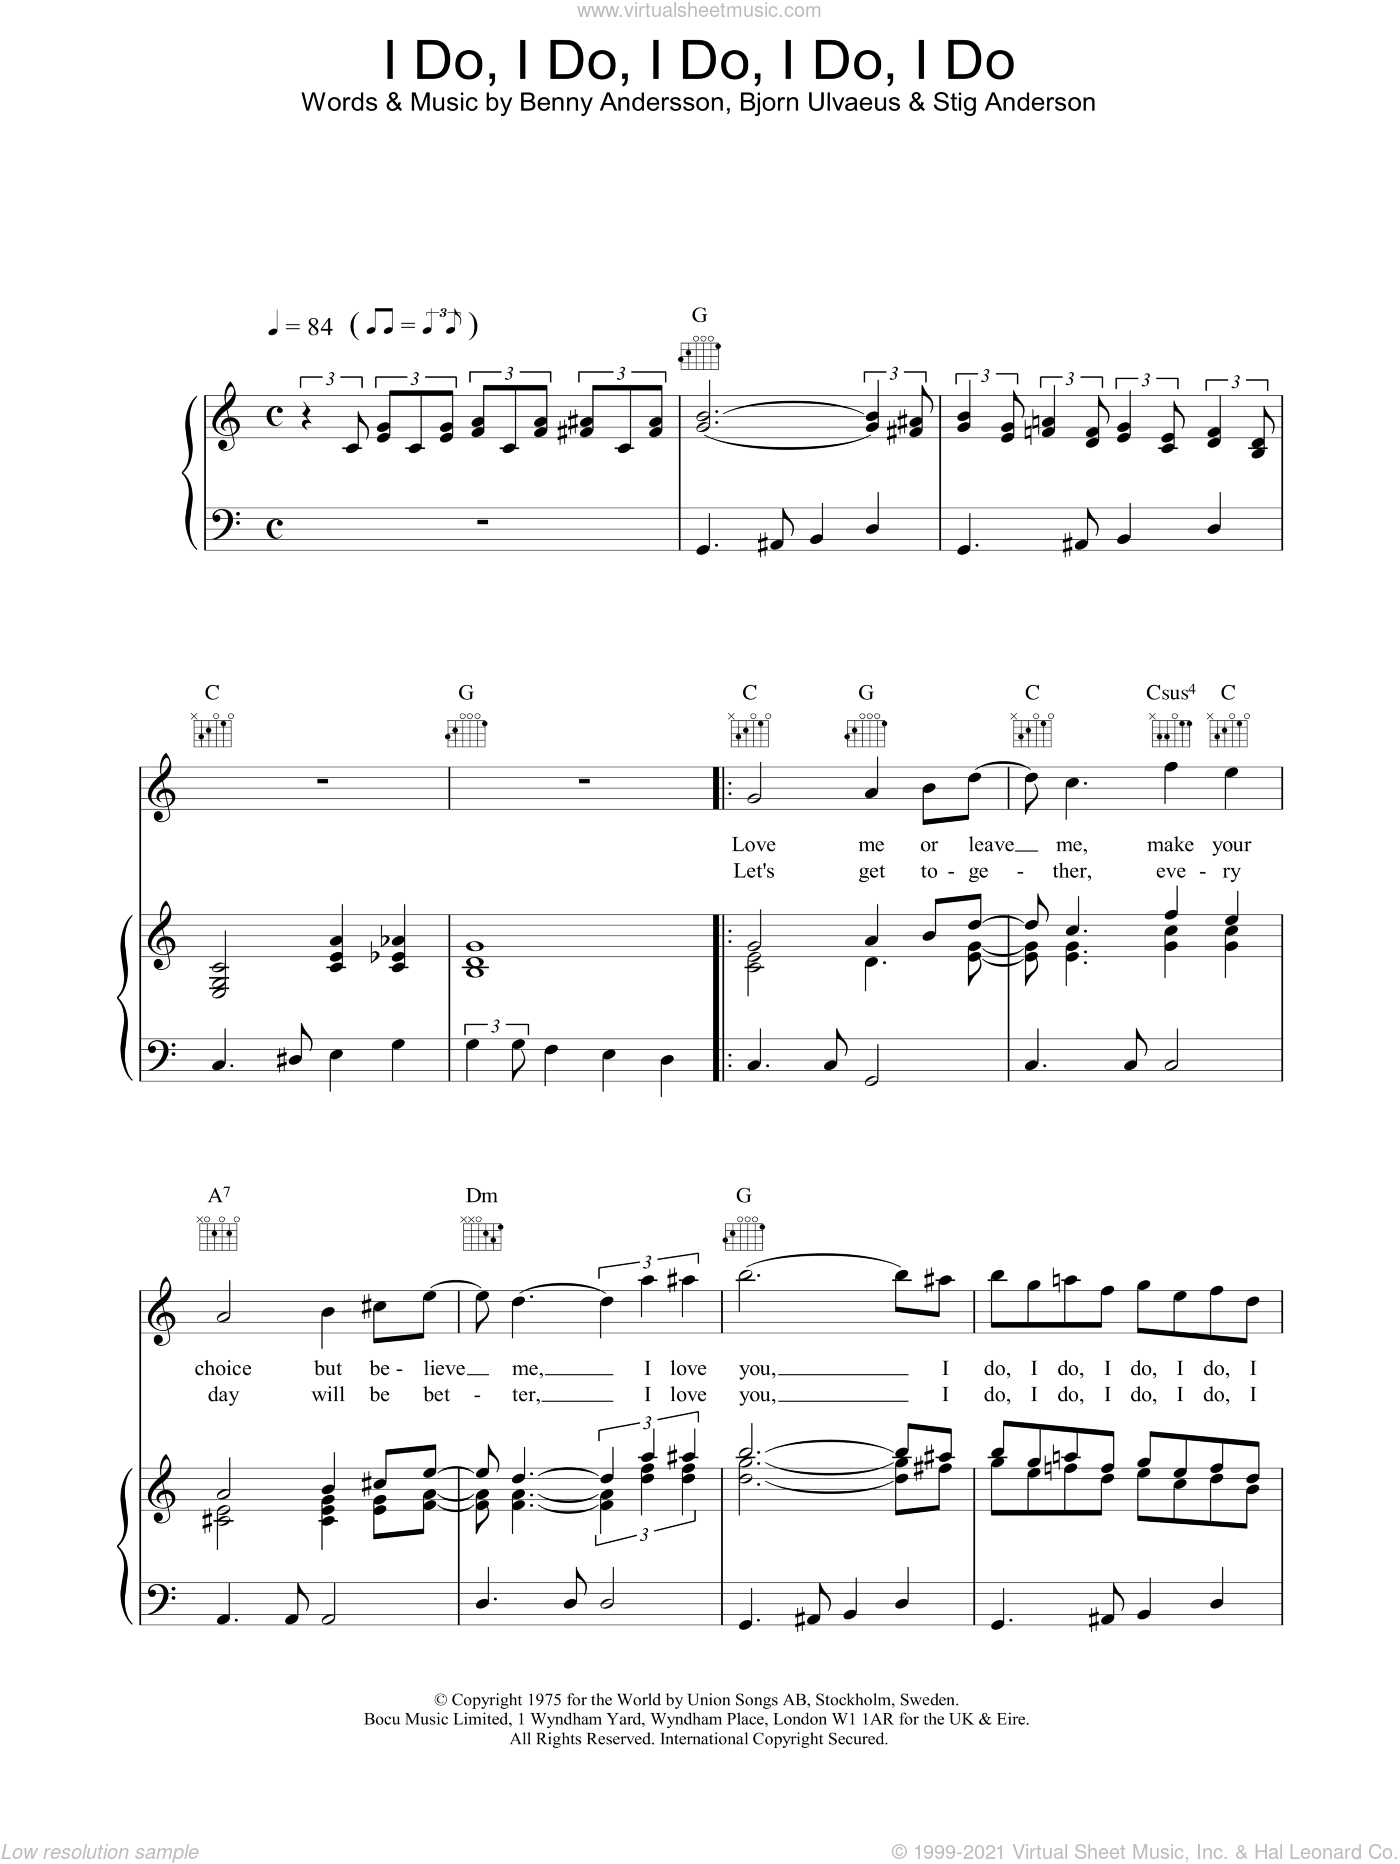 I Do, I Do, I Do, I Do, I Do sheet music for voice, piano or guitar by Stig Anderson, ABBA, Benny Andersson and Bjorn Ulvaeus. Score Image Preview.